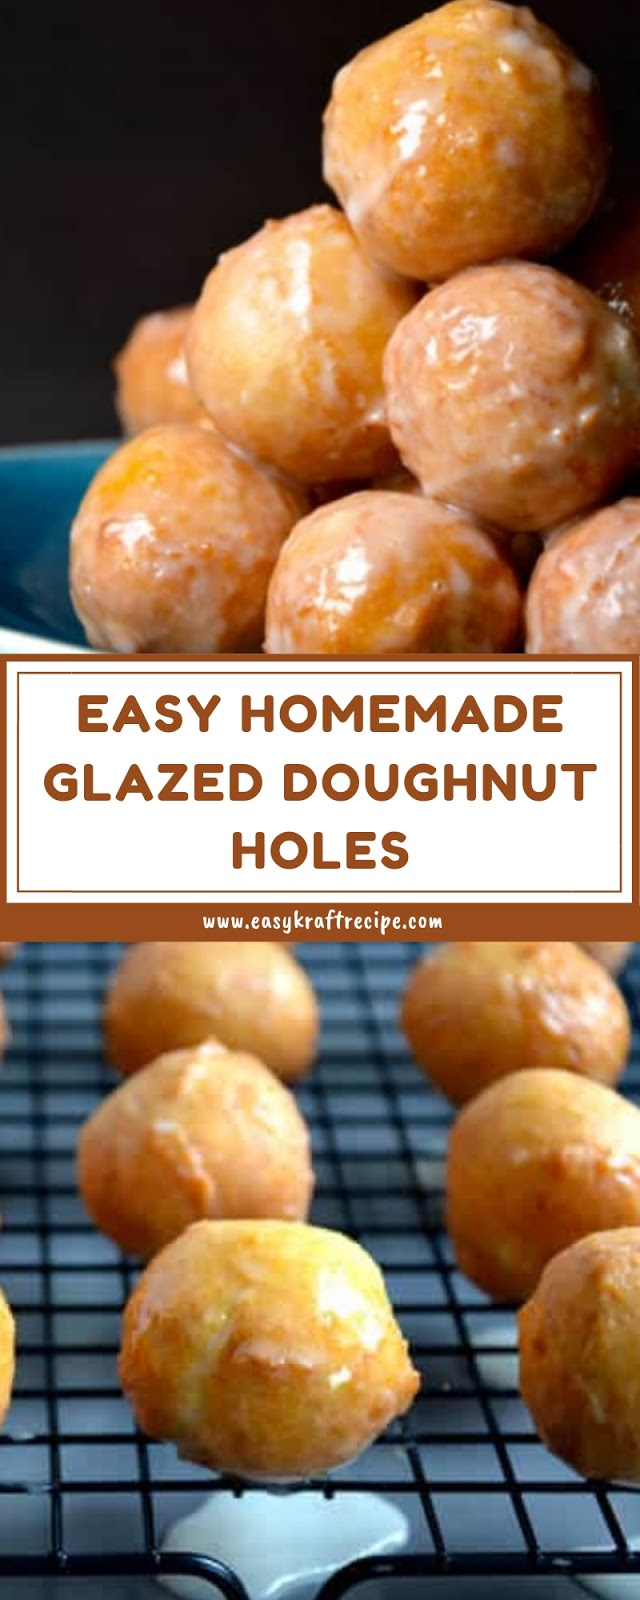 EASY HOMEMADE GLAZED DOUGHNUT HOLES